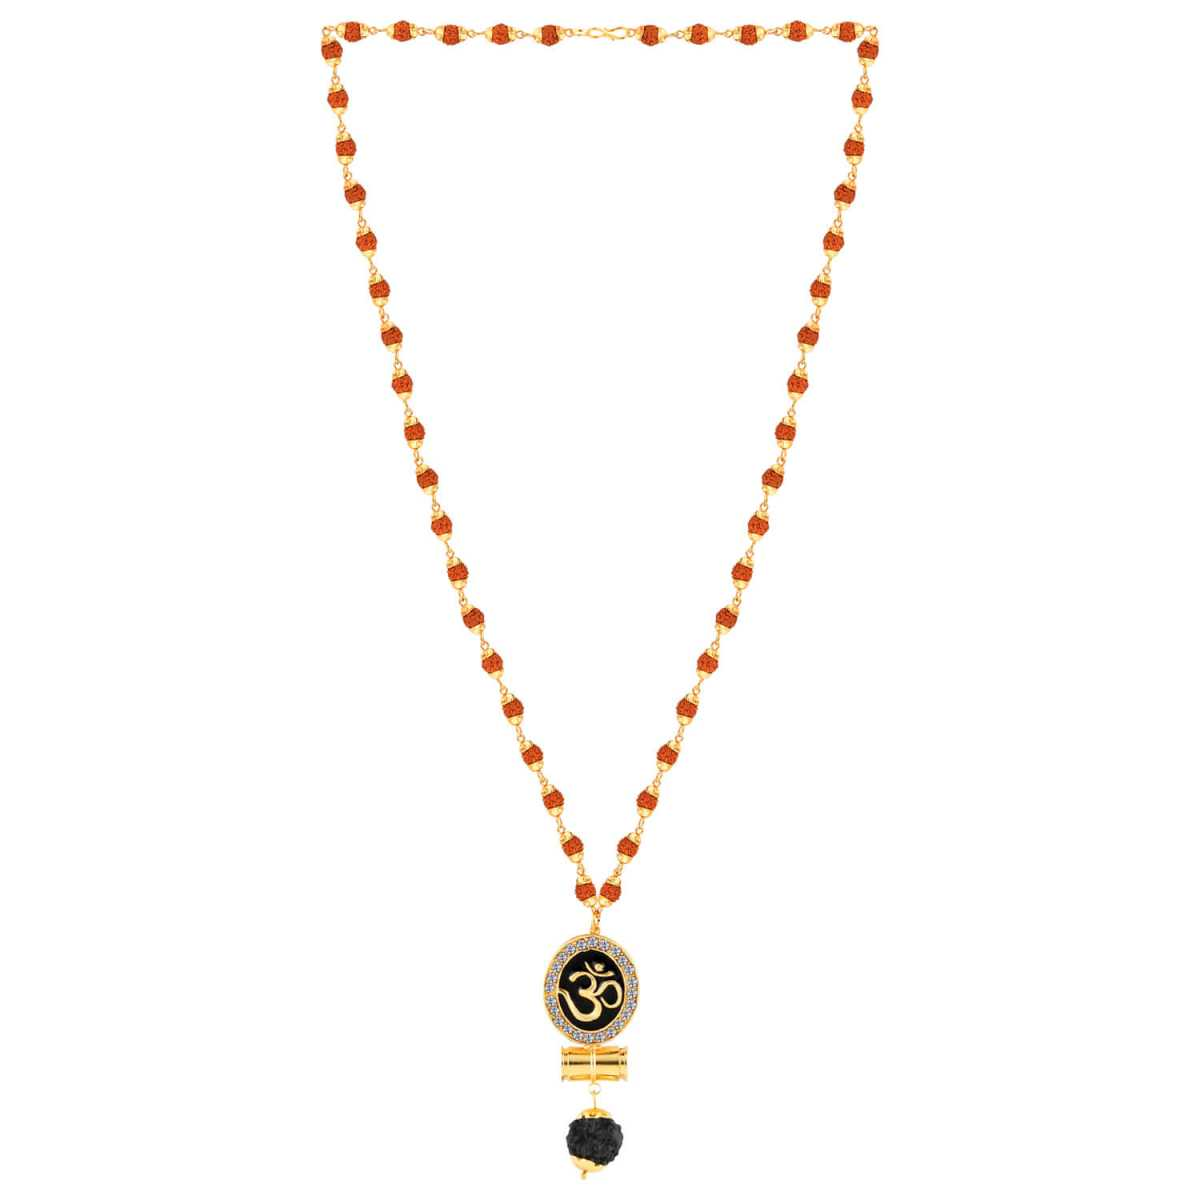 SILVER SHINE Religious Rudraksh Mala Om Gold Pendant for Men and Women